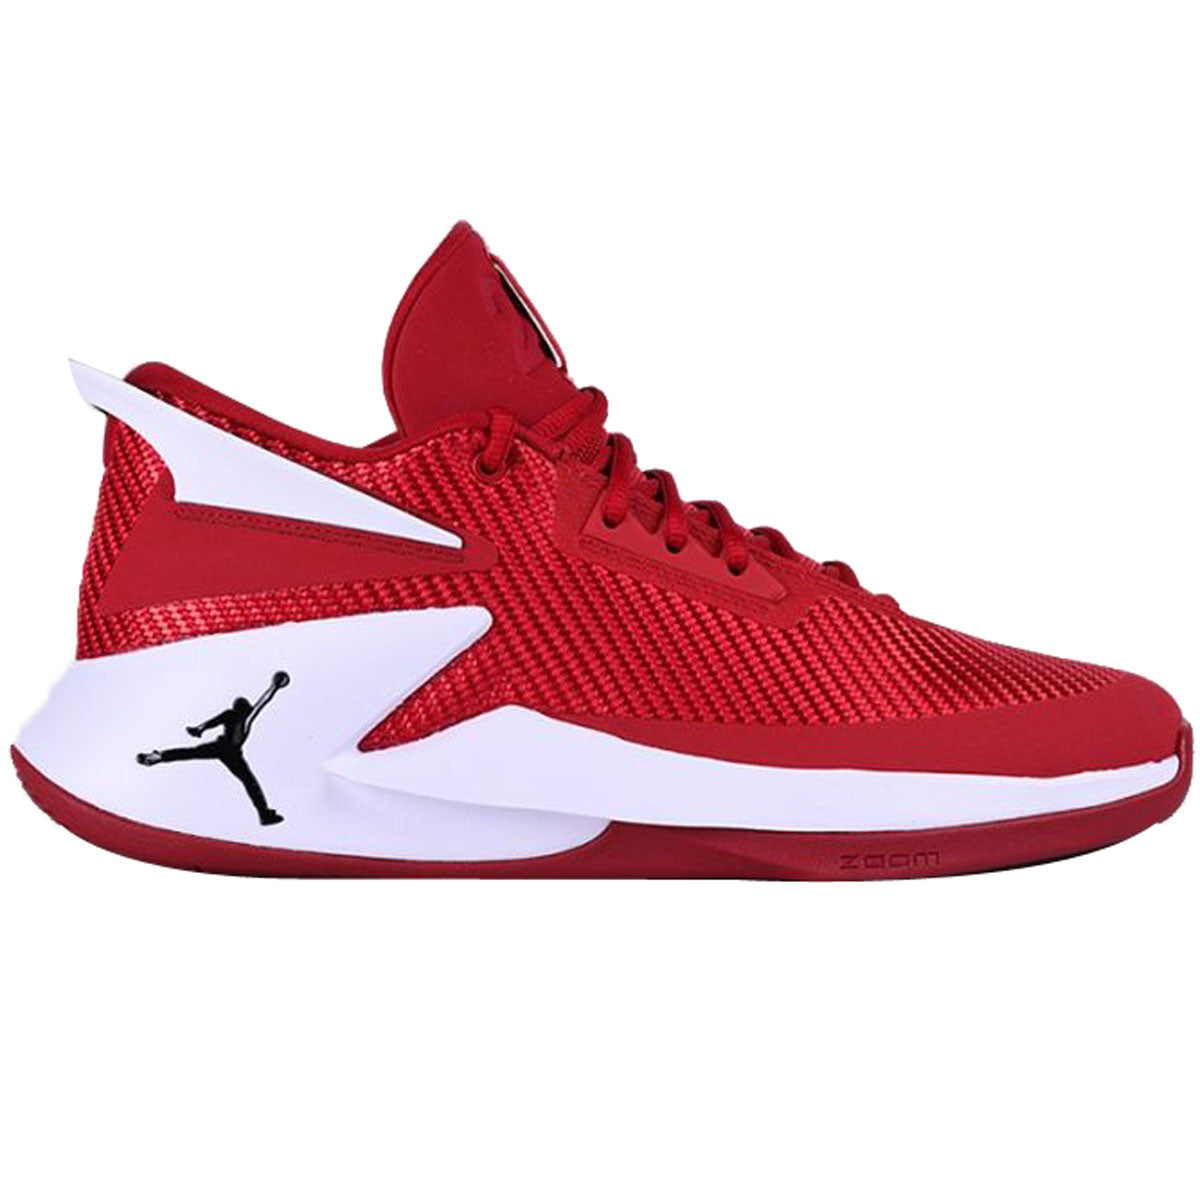 Nike Jordan Fly Lockdown Basketball Boot/Shoe NK-AJ9499-601